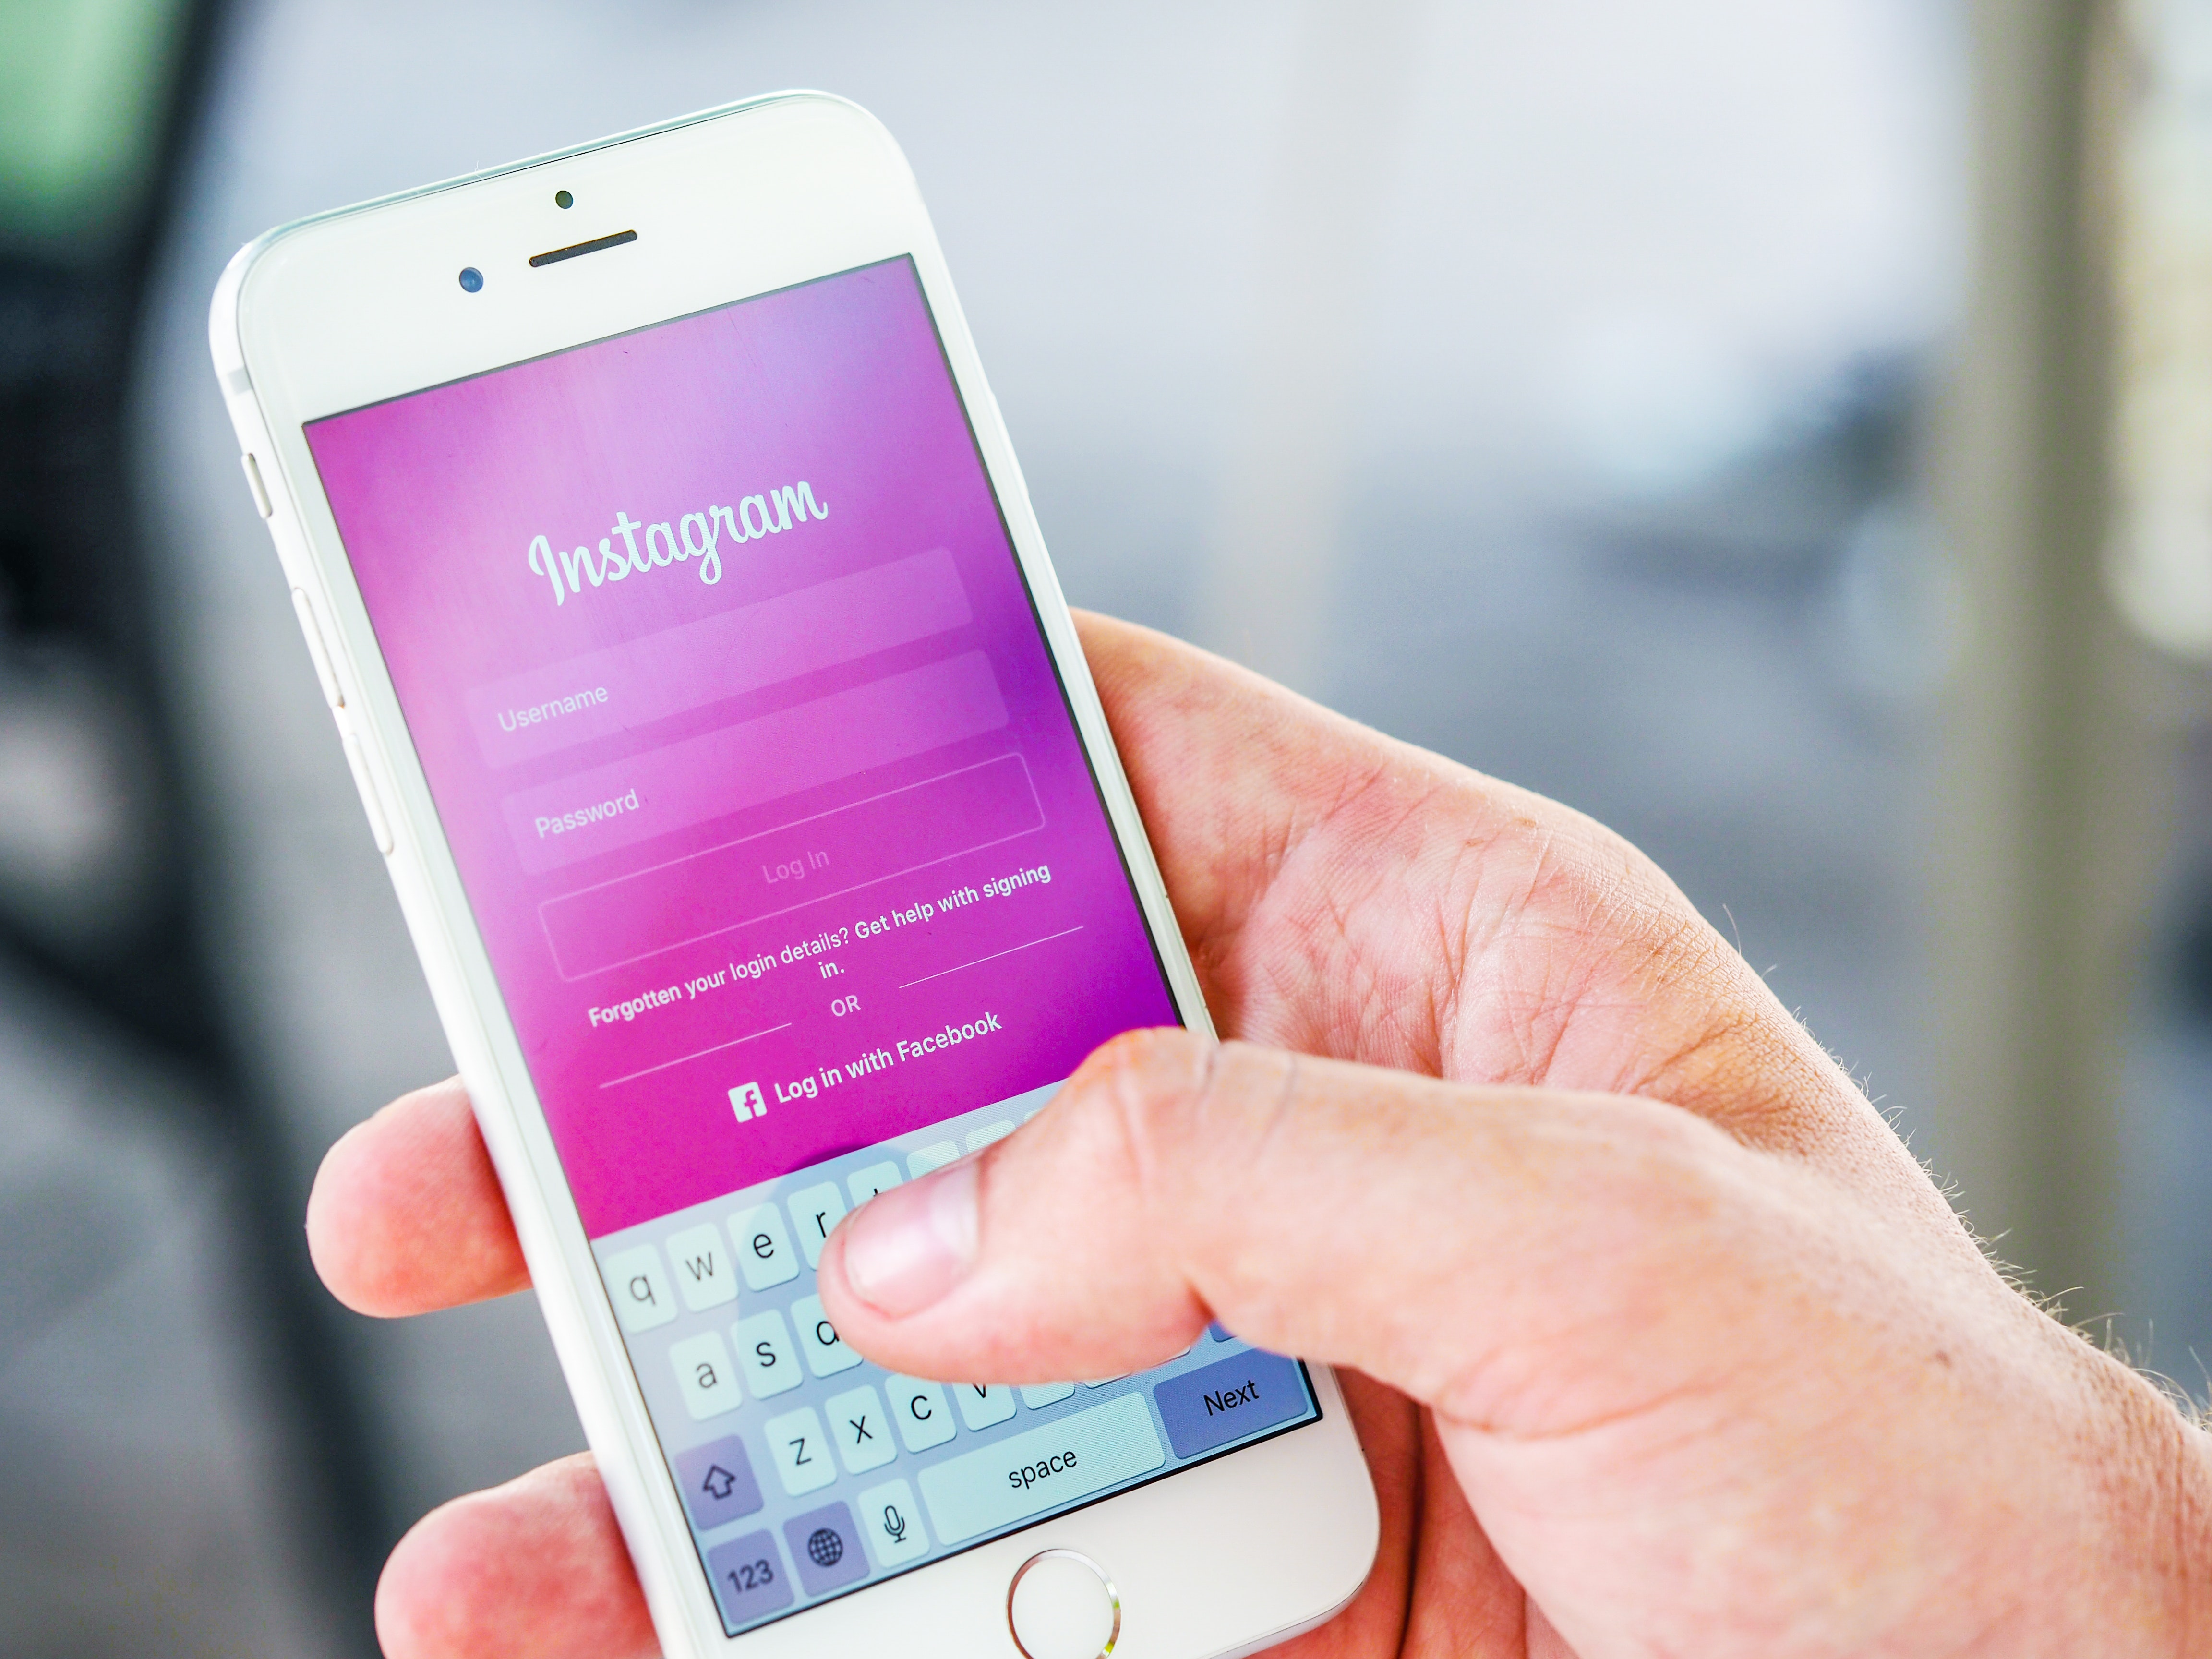 Instagram Marketing 101: 5 Ways to Use Instagram to Promote Your Local Business